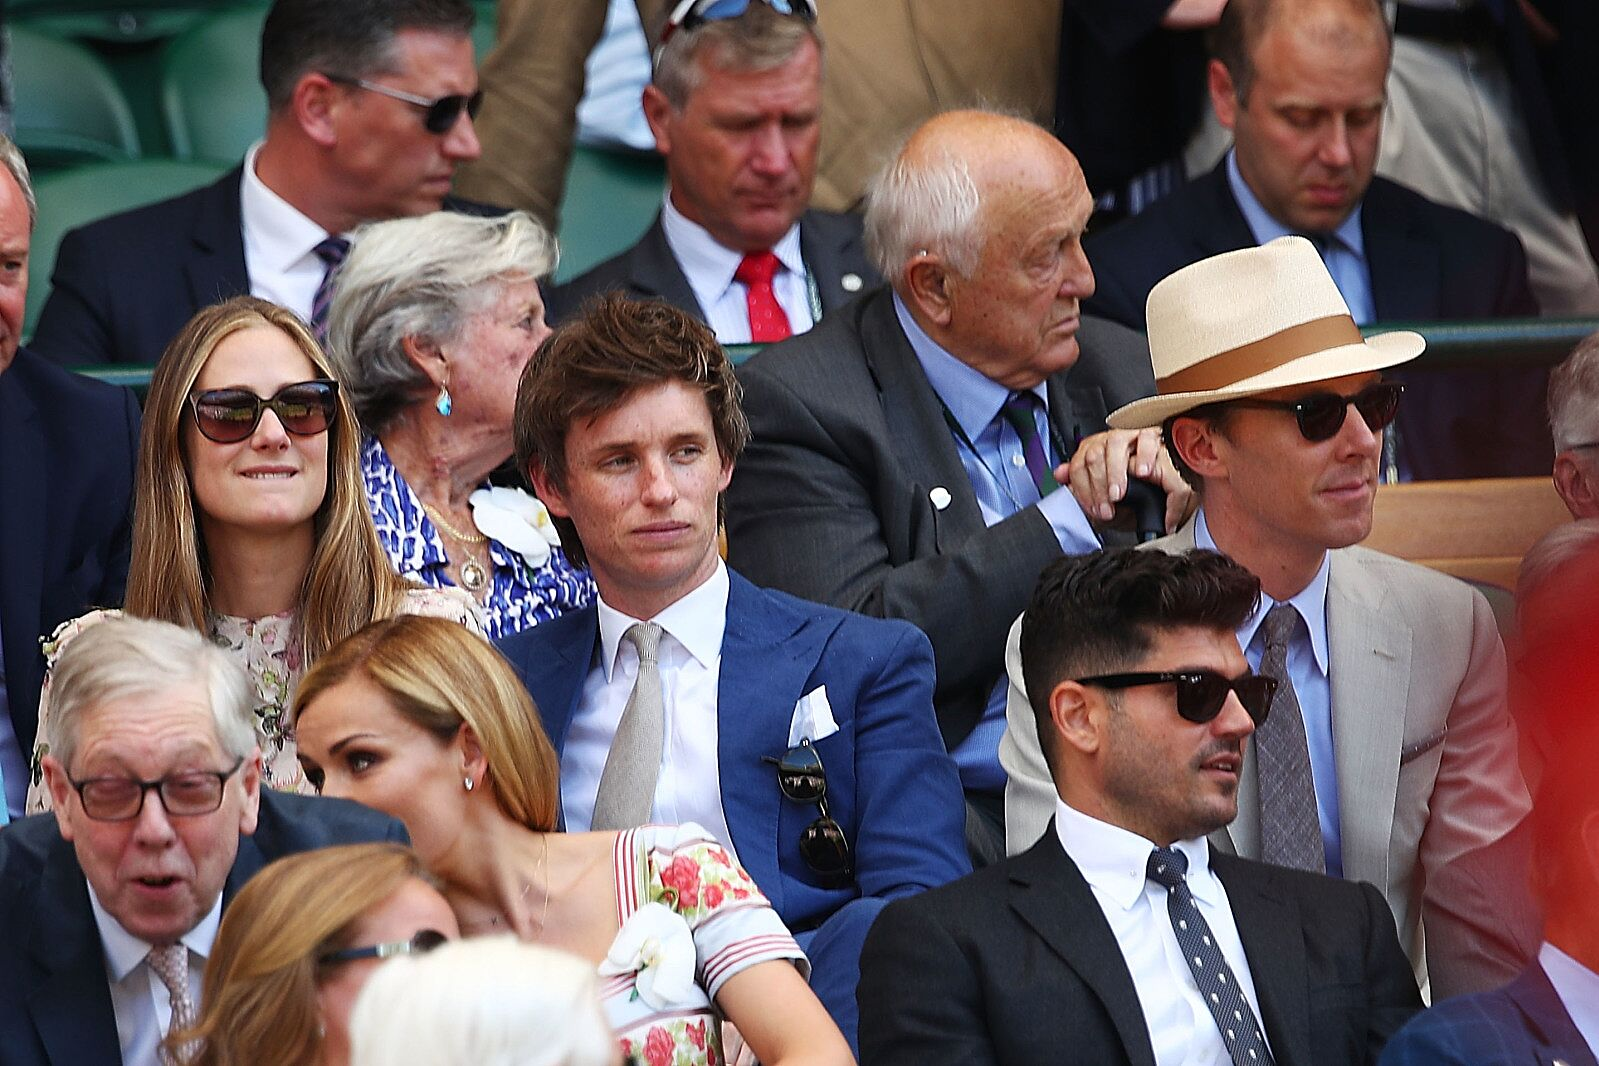 Tom Holland spotted Emma Watson and other celebs at Wimbledon